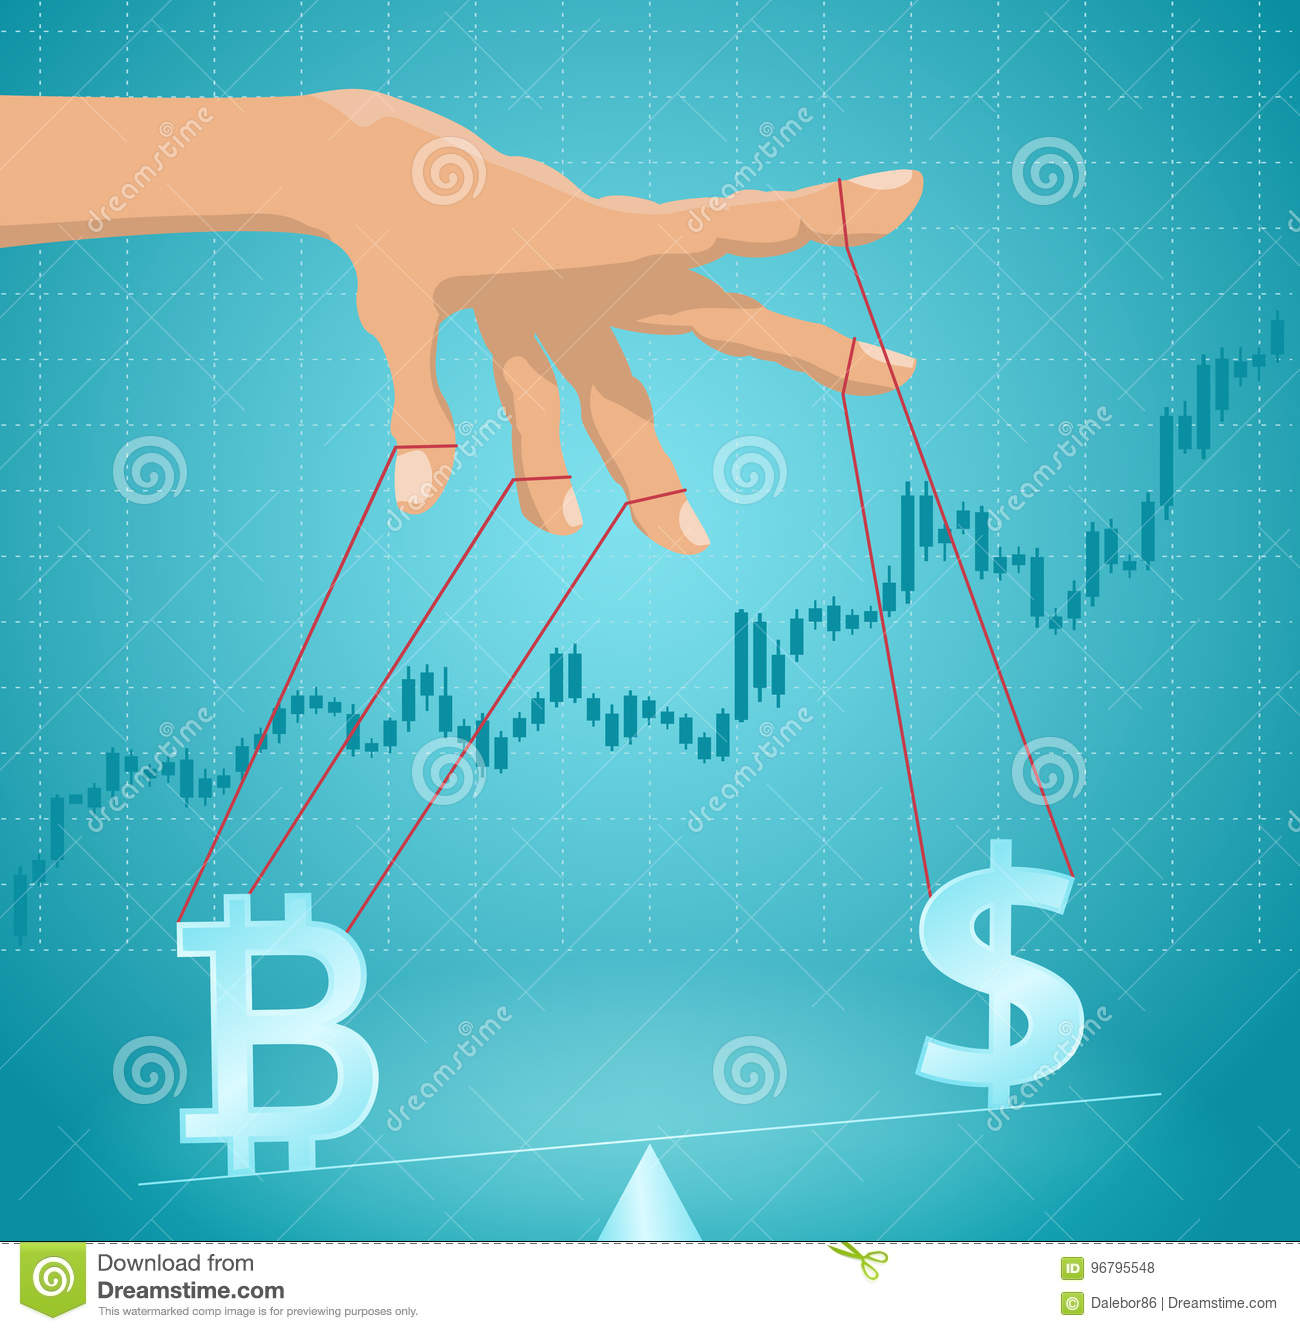 Manipulation of the bitcoin value.